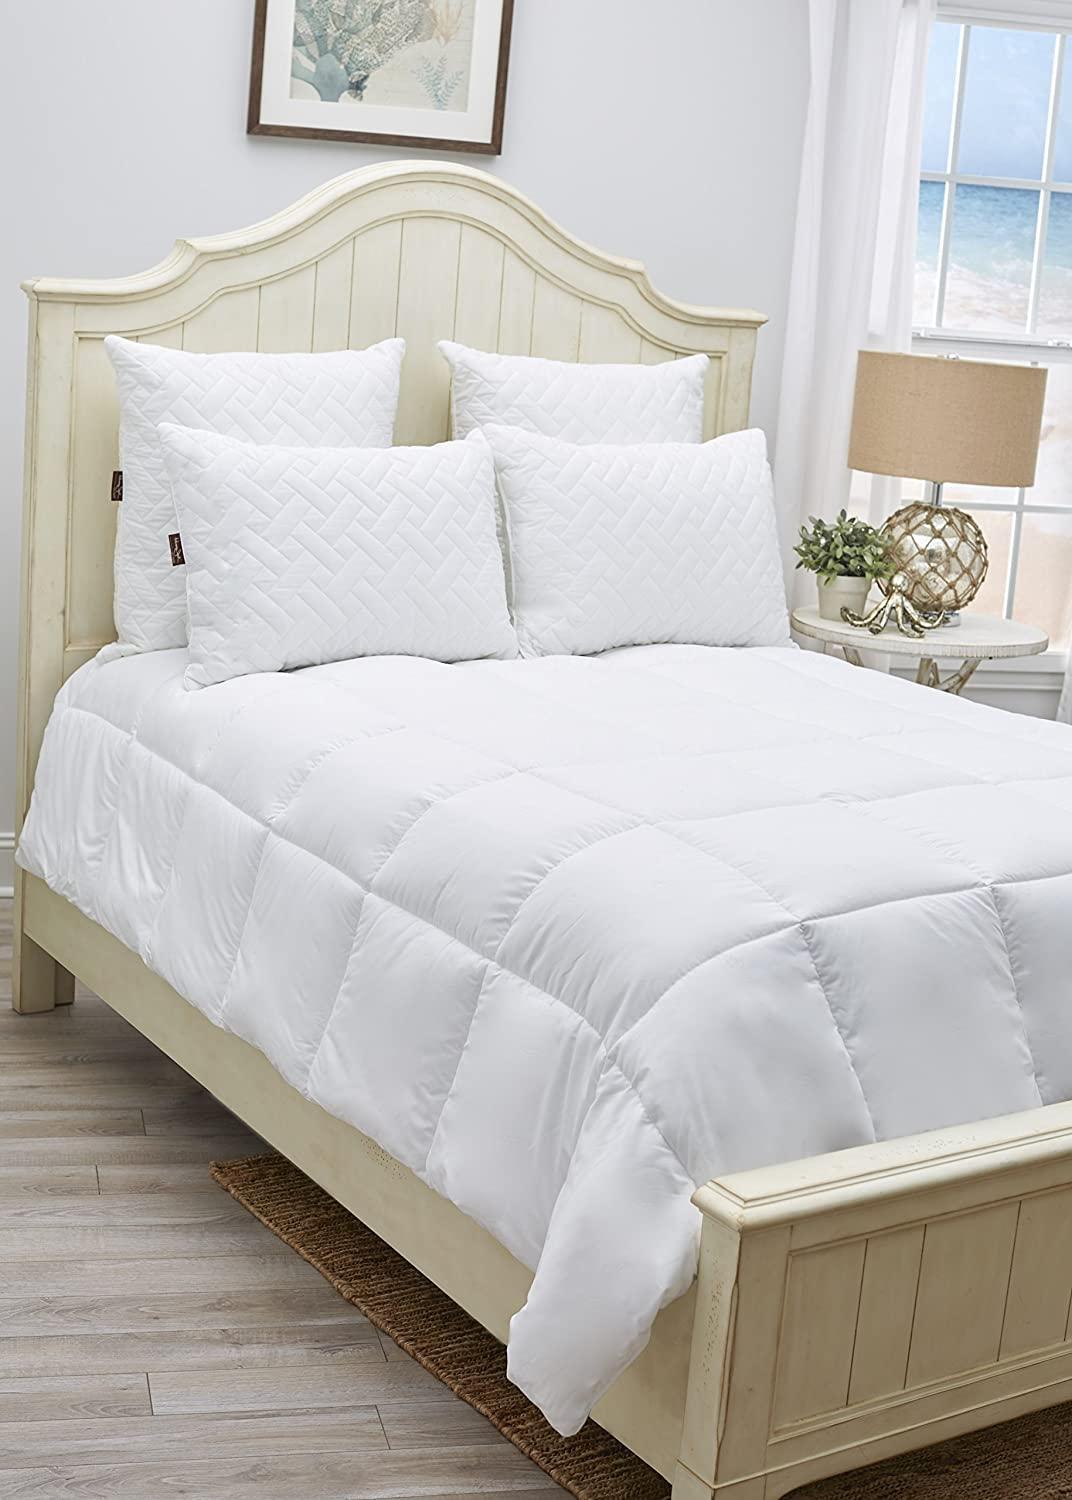 duvets covers custom ca san skirts valley bedding bed bedroom slider bedspreads and comforters rafael pillows duvet mill cordlock